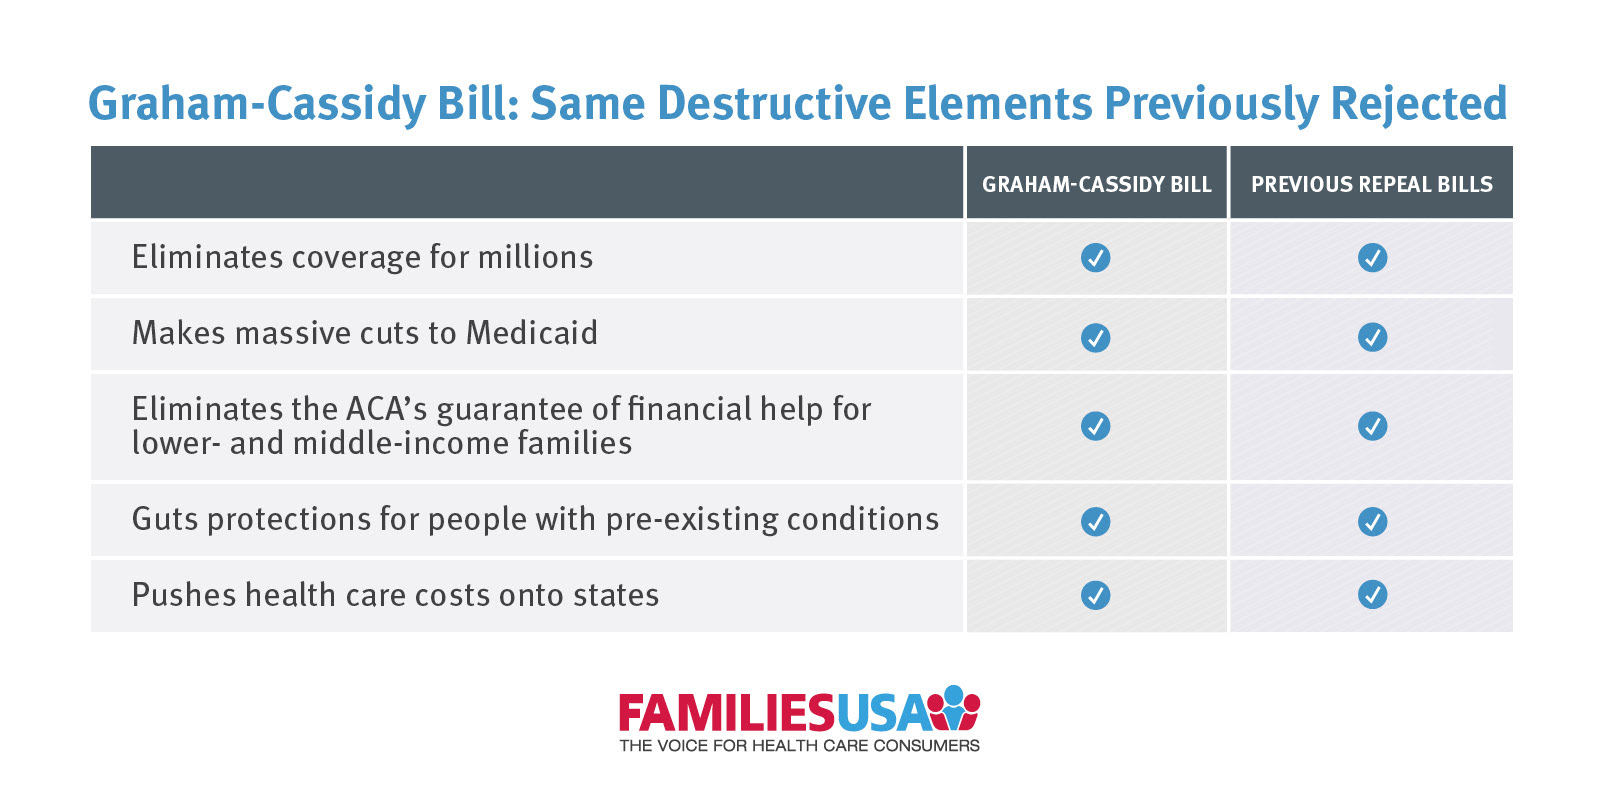 Graphic from FamiliesUSA showing that the Graham-Cassidy bill and the previous repeal bills have the following things in common: eliminates coverage for millions, makes massive cuts to Medicaid, eliminates the ACA's guarantee of financial help for lower- and middle-income families, guts protections for people with pre-existing conditions, pushes health care costs onto states